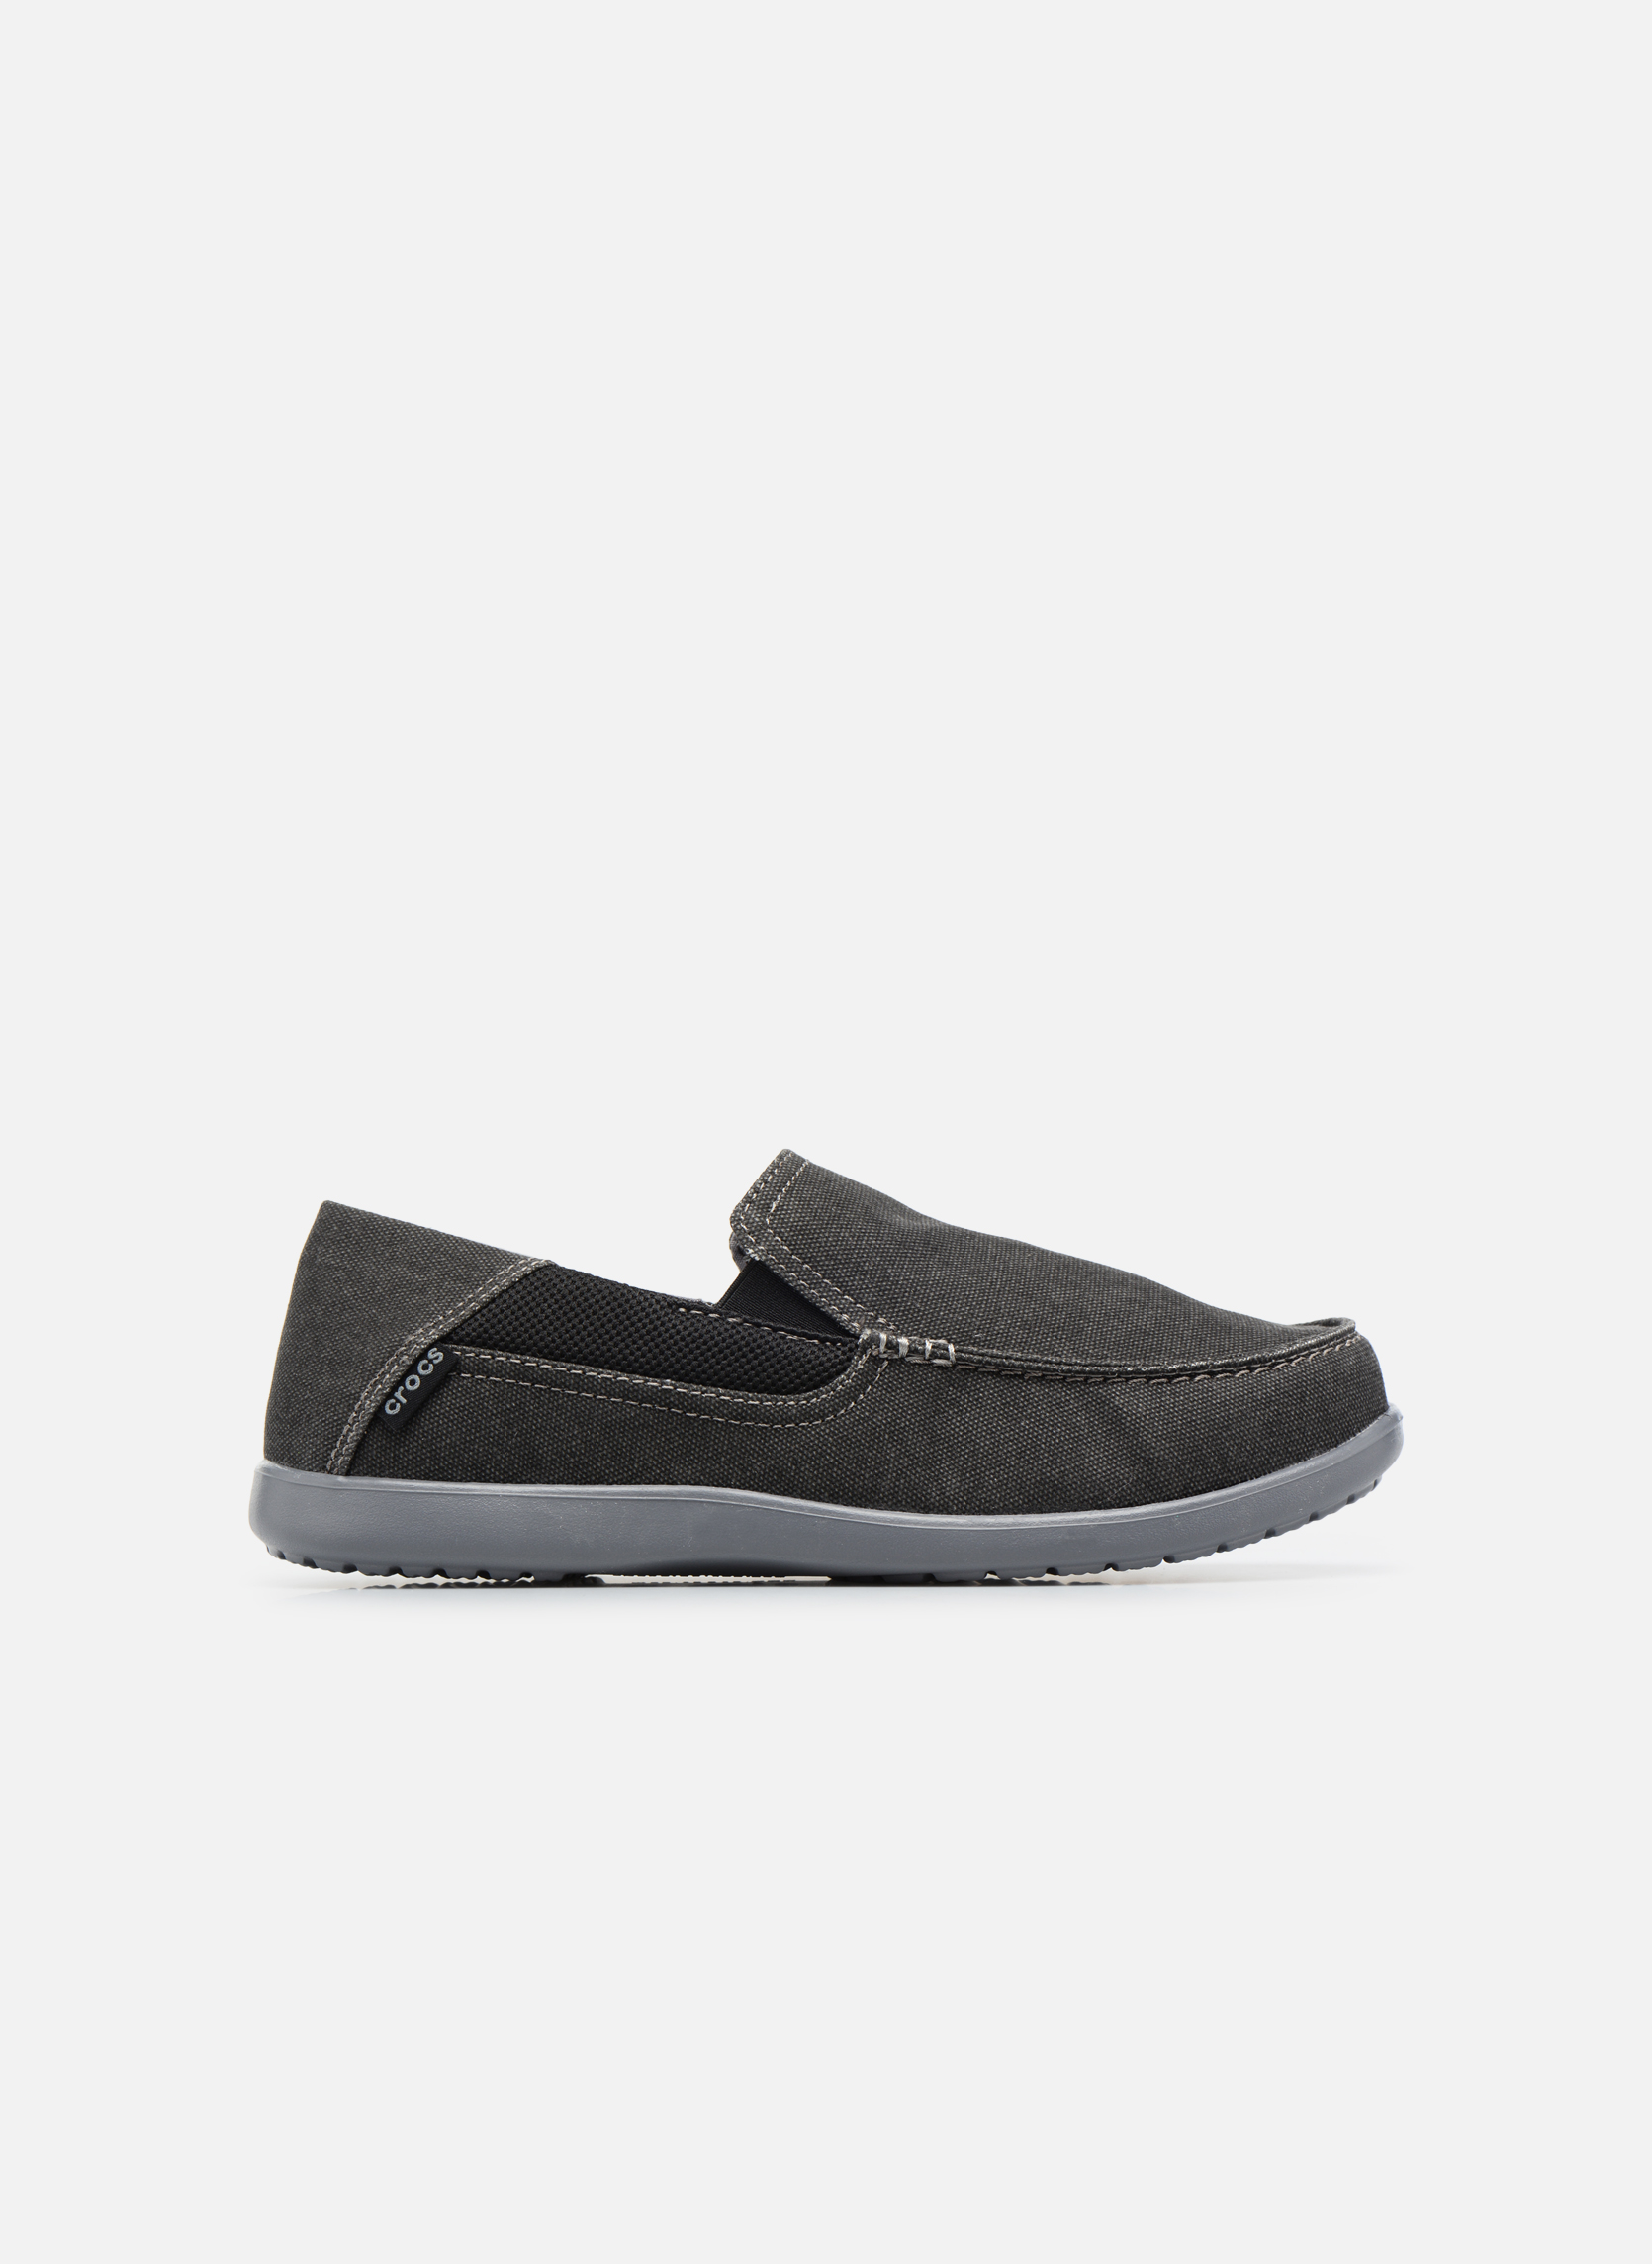 Santa Cruz 2 Luxe M Black/charcoal